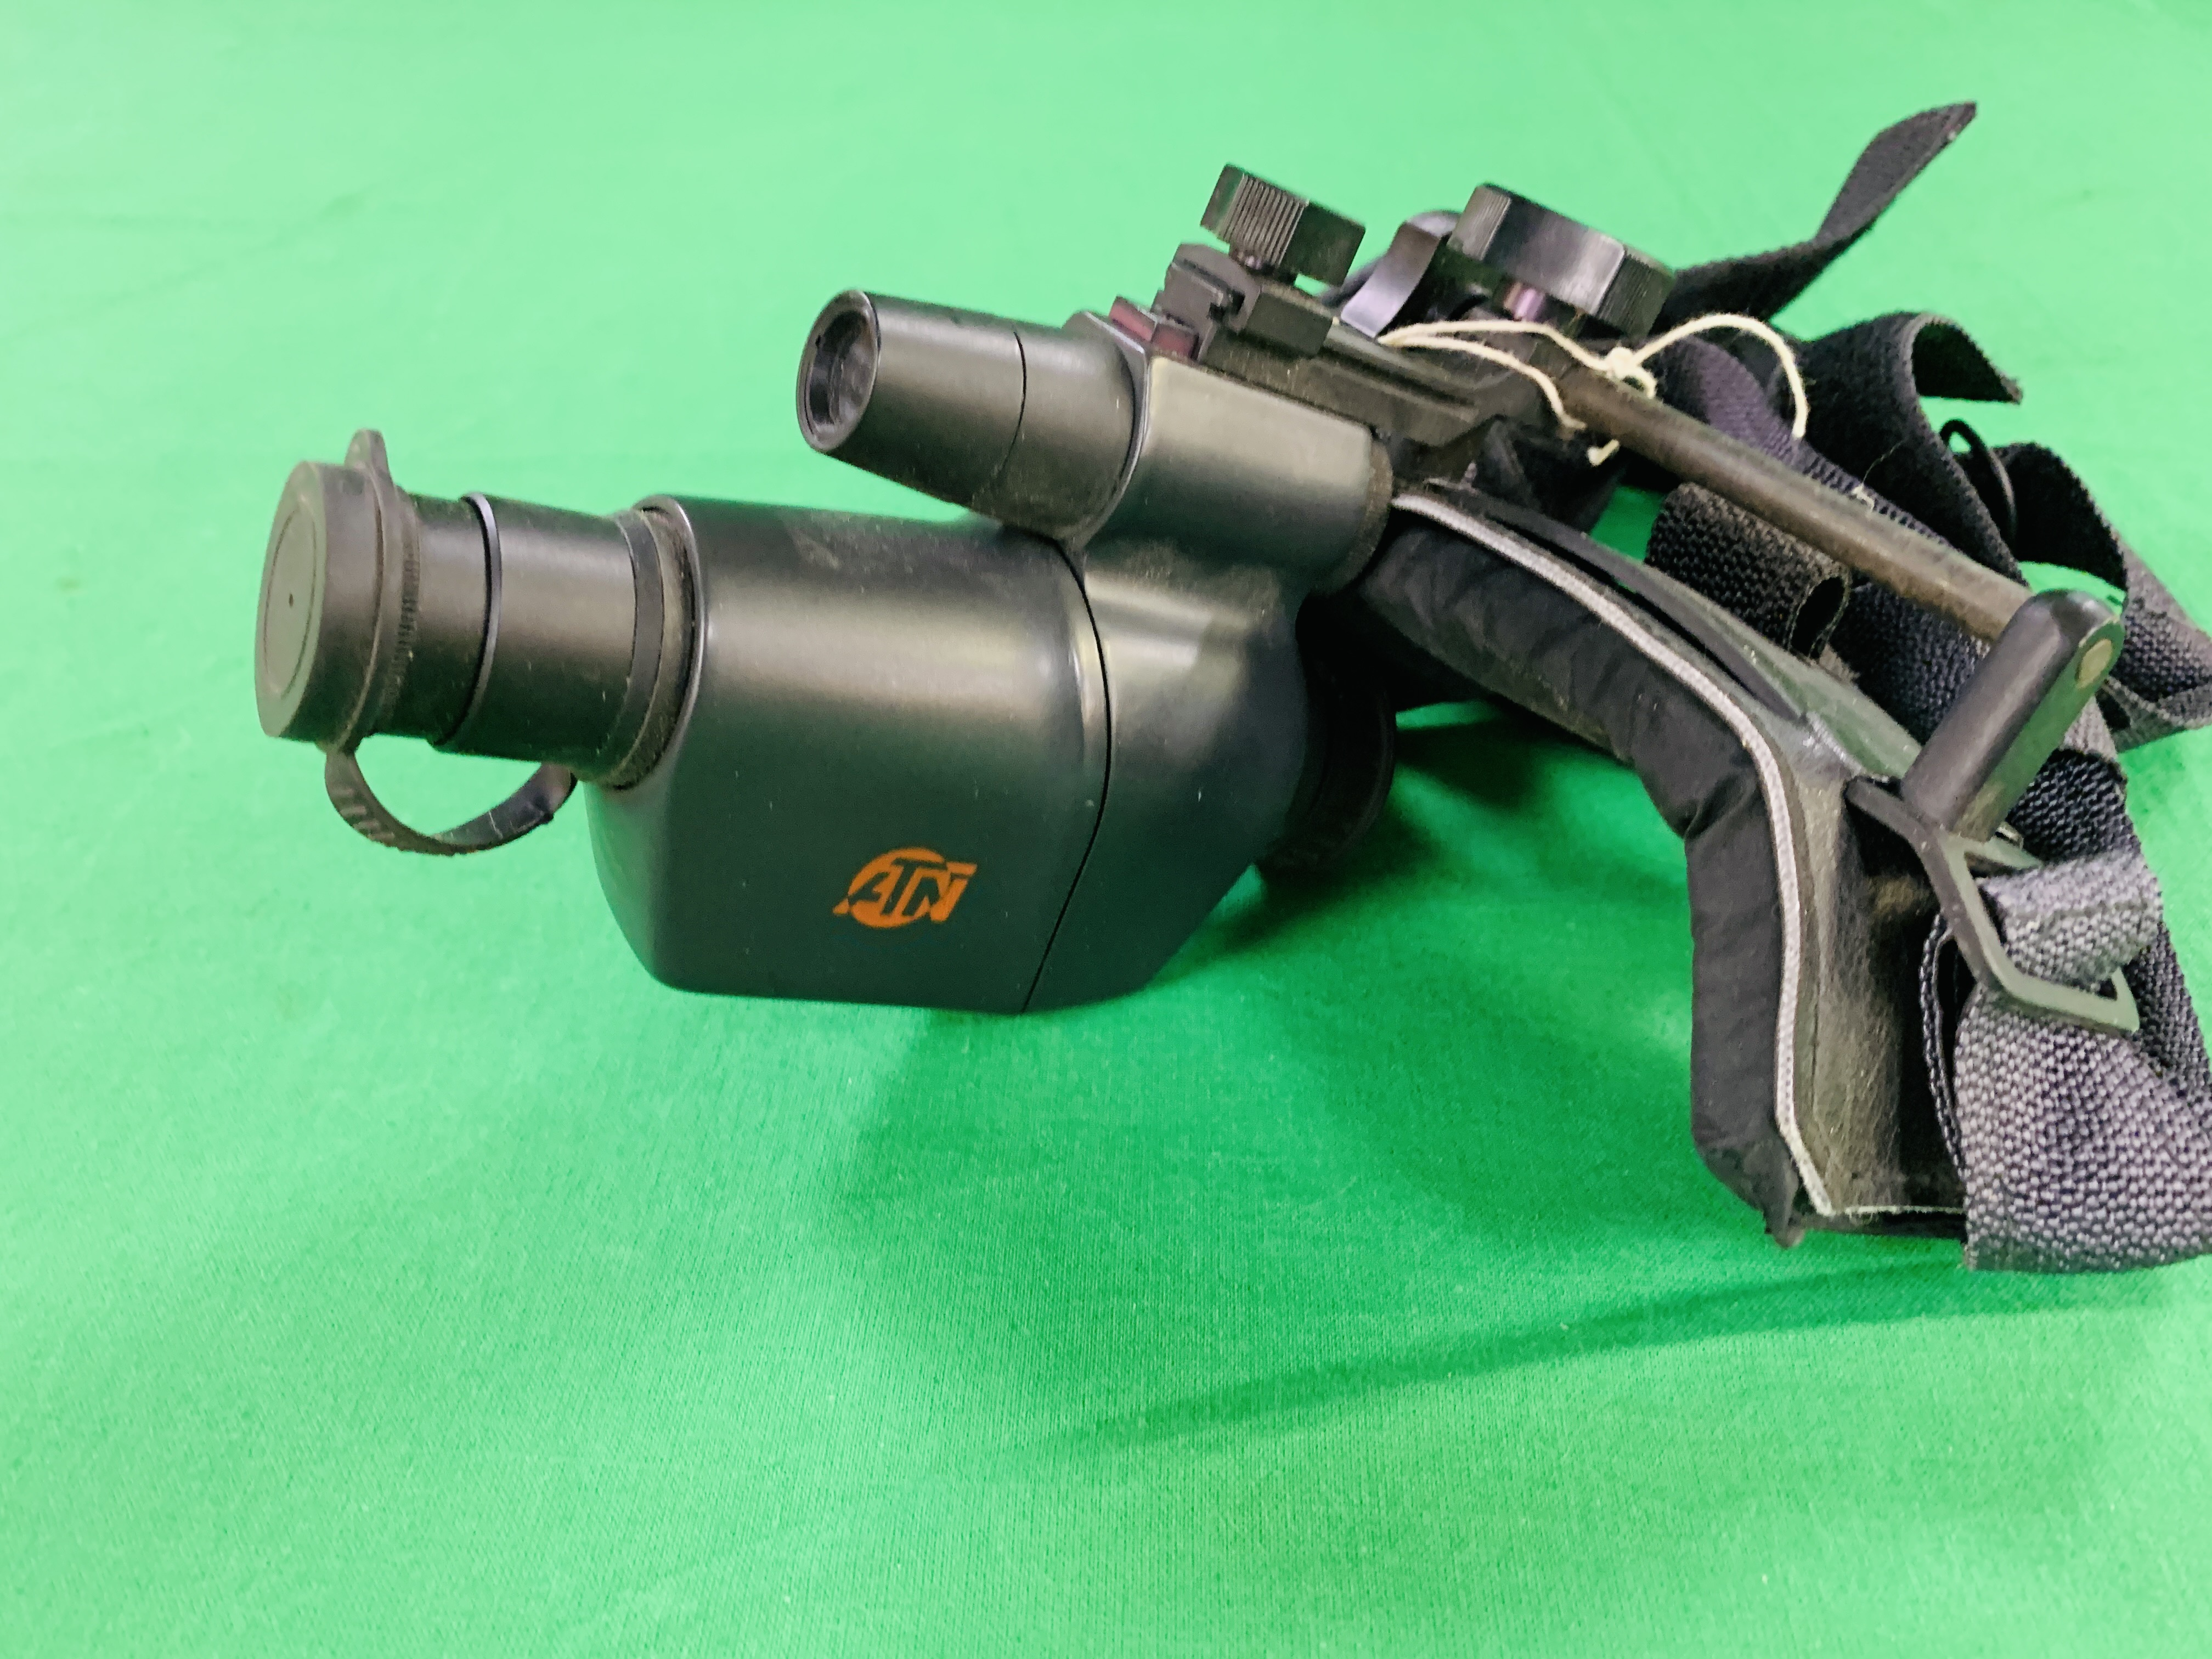 A ATN VIPER NIGHT VISION MONOCULAR INFERRED SITE WITH HEAD BAND - Image 6 of 6